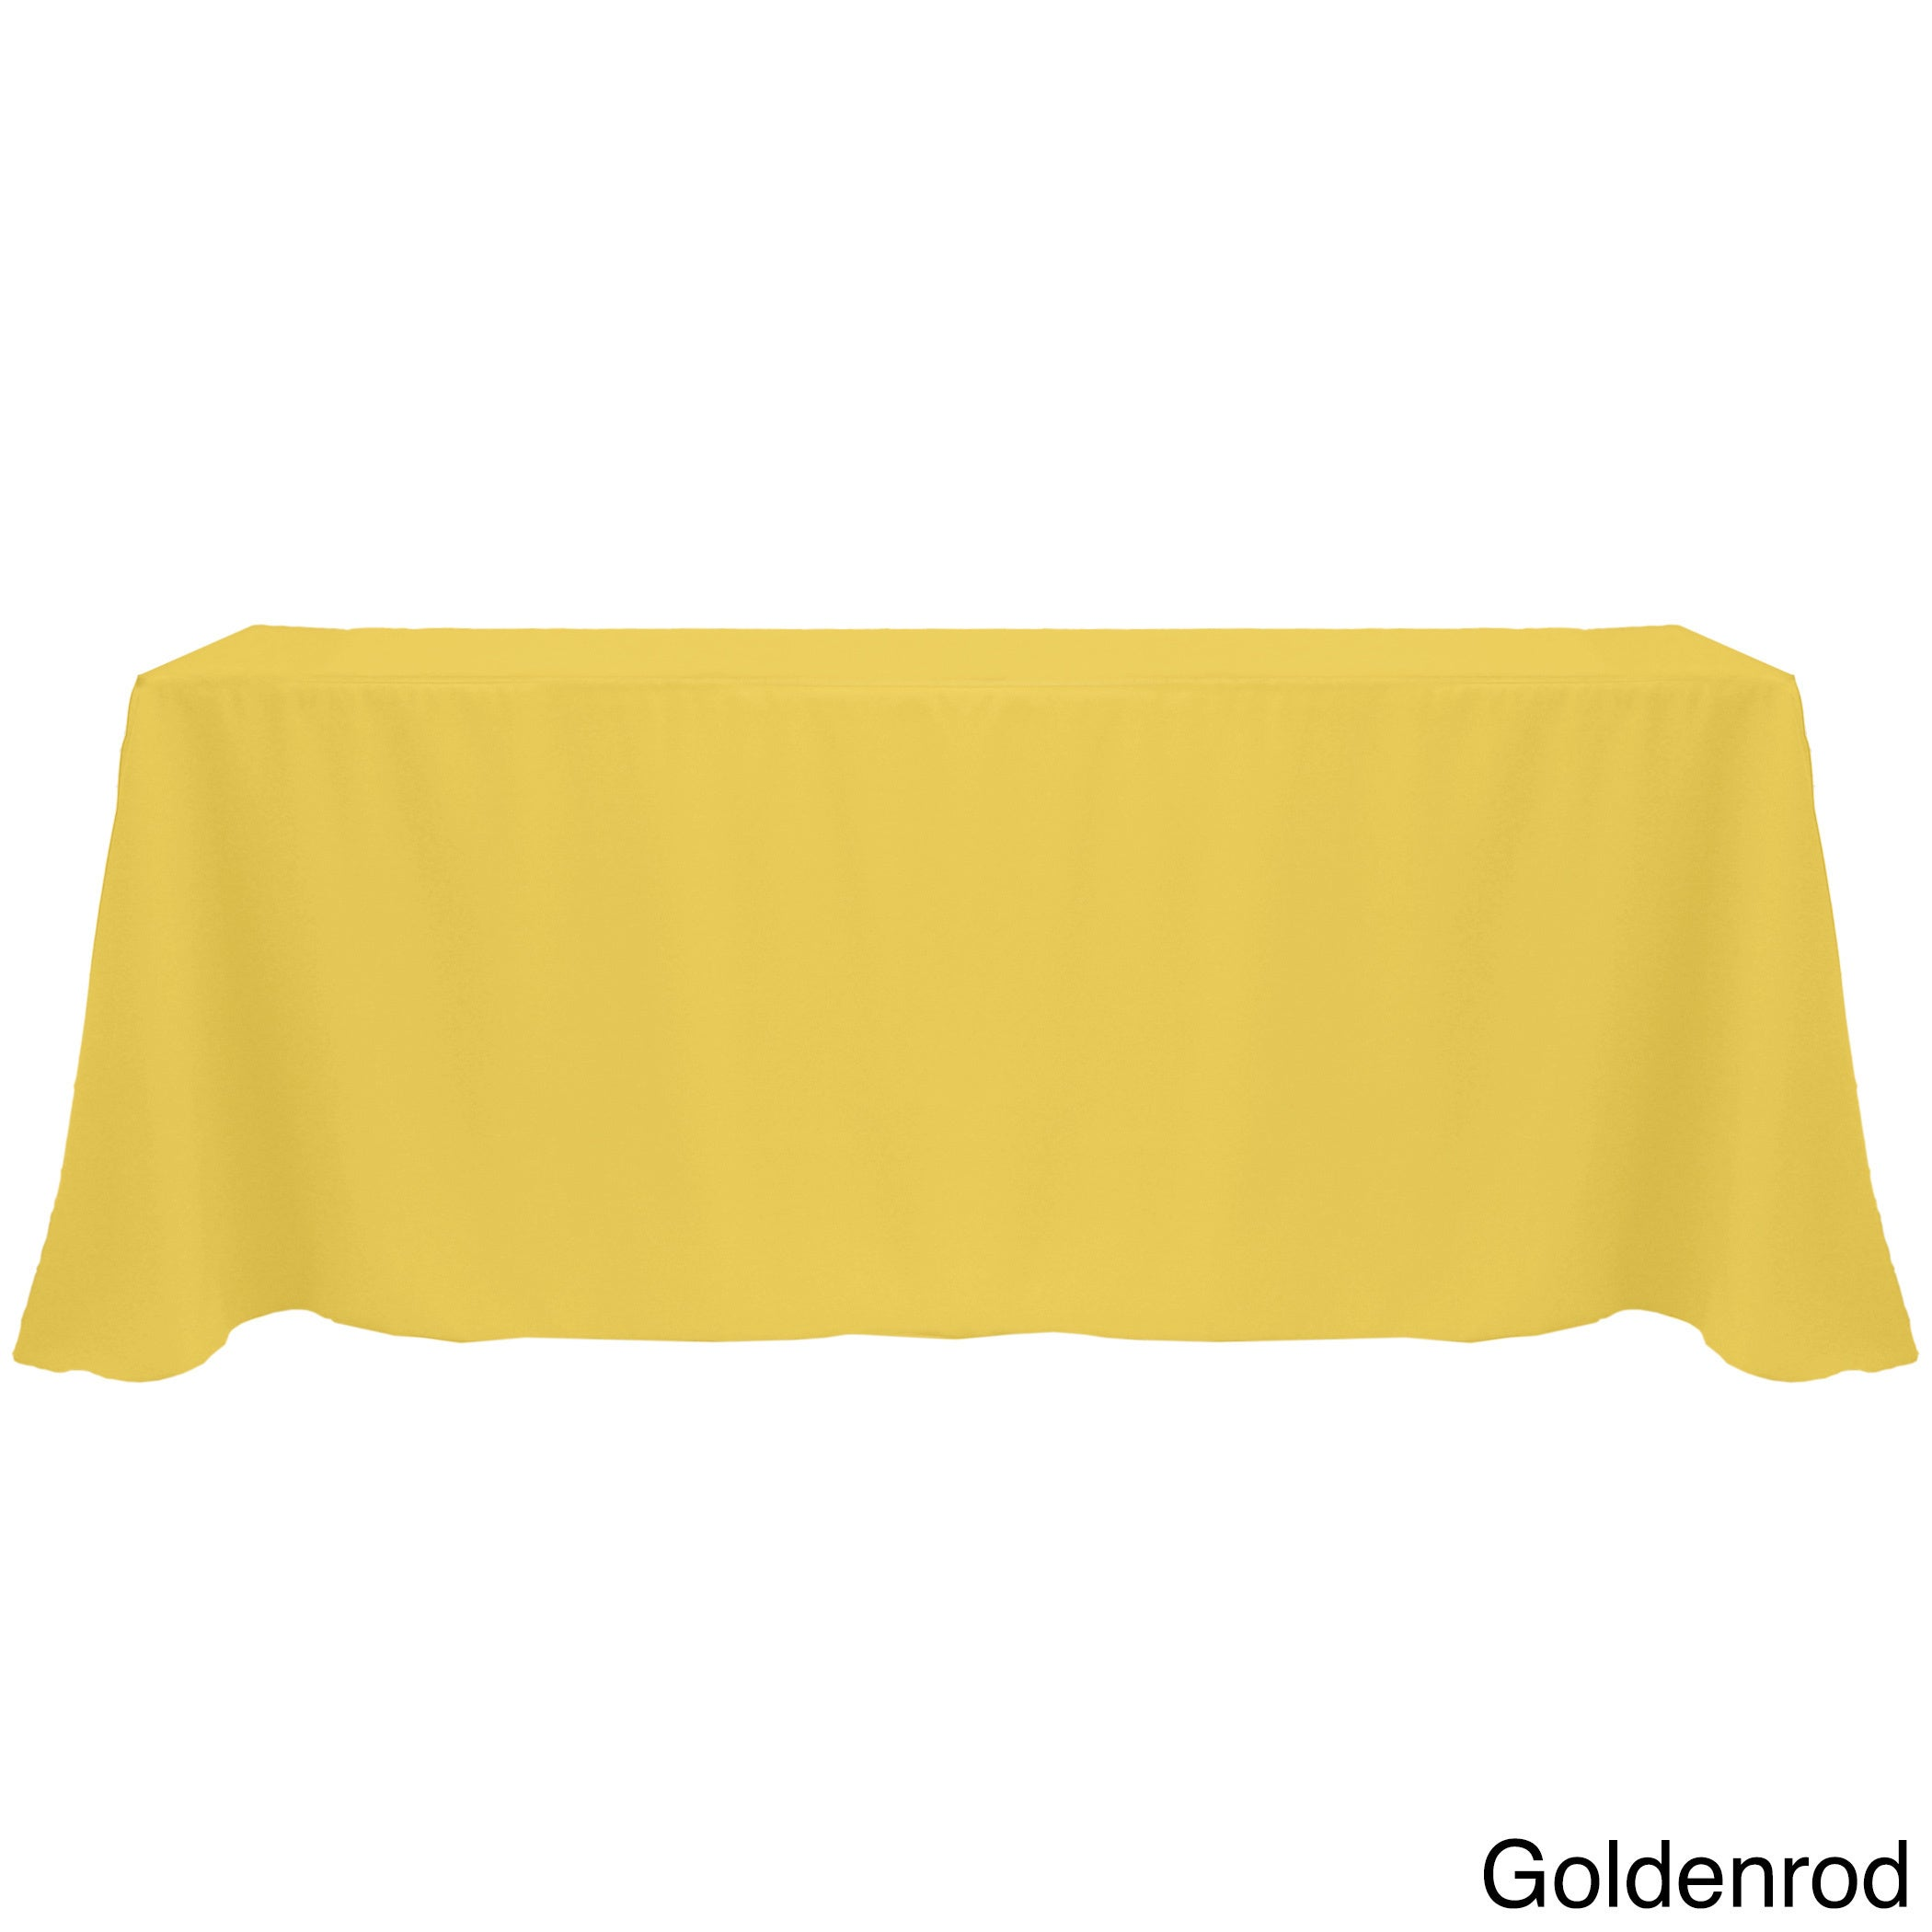 Ordinaire Shop Solid Color 90x132 Inch Vibrant Oval Tablecloth   Free Shipping On  Orders Over $45   Overstock.com   10222599